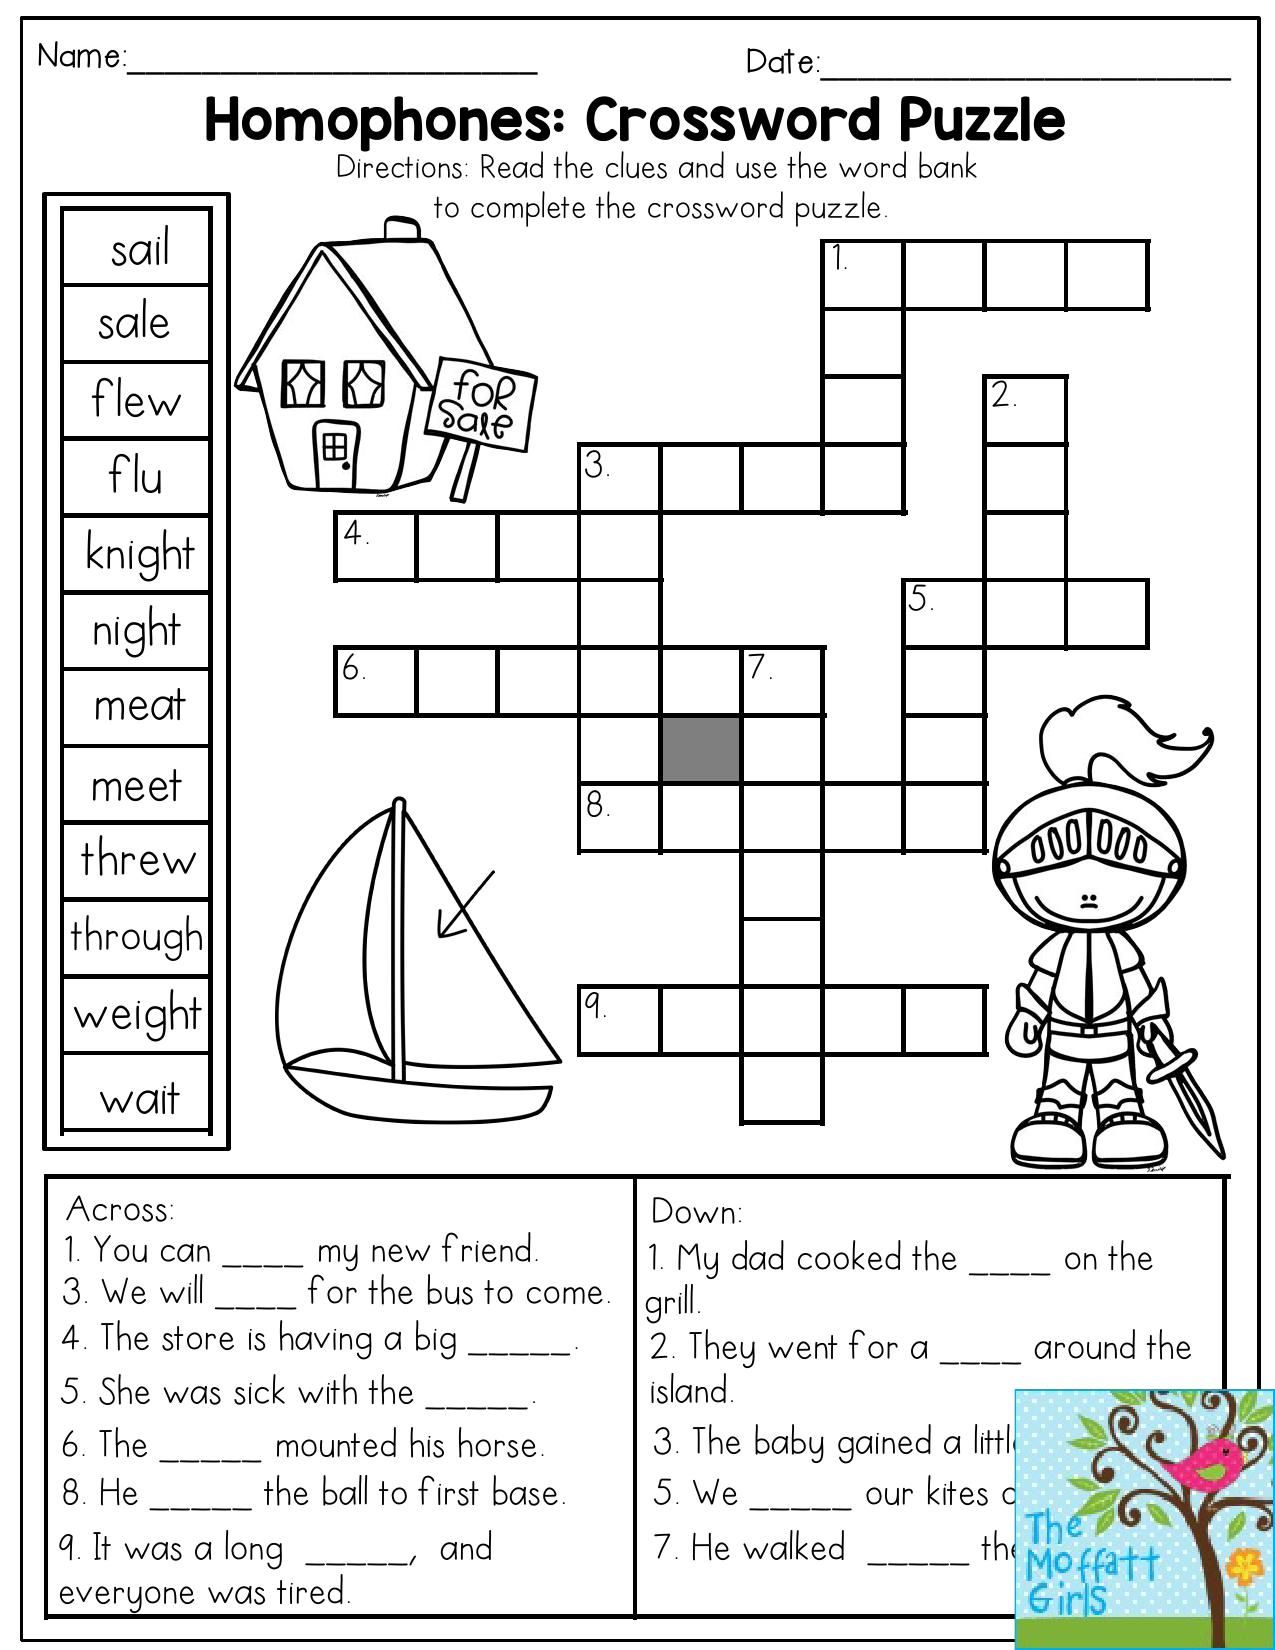 Homophones: Crossword Puzzle- Read The Clues And Use The Word Bank - 4Th Grade Crossword Puzzles Printable